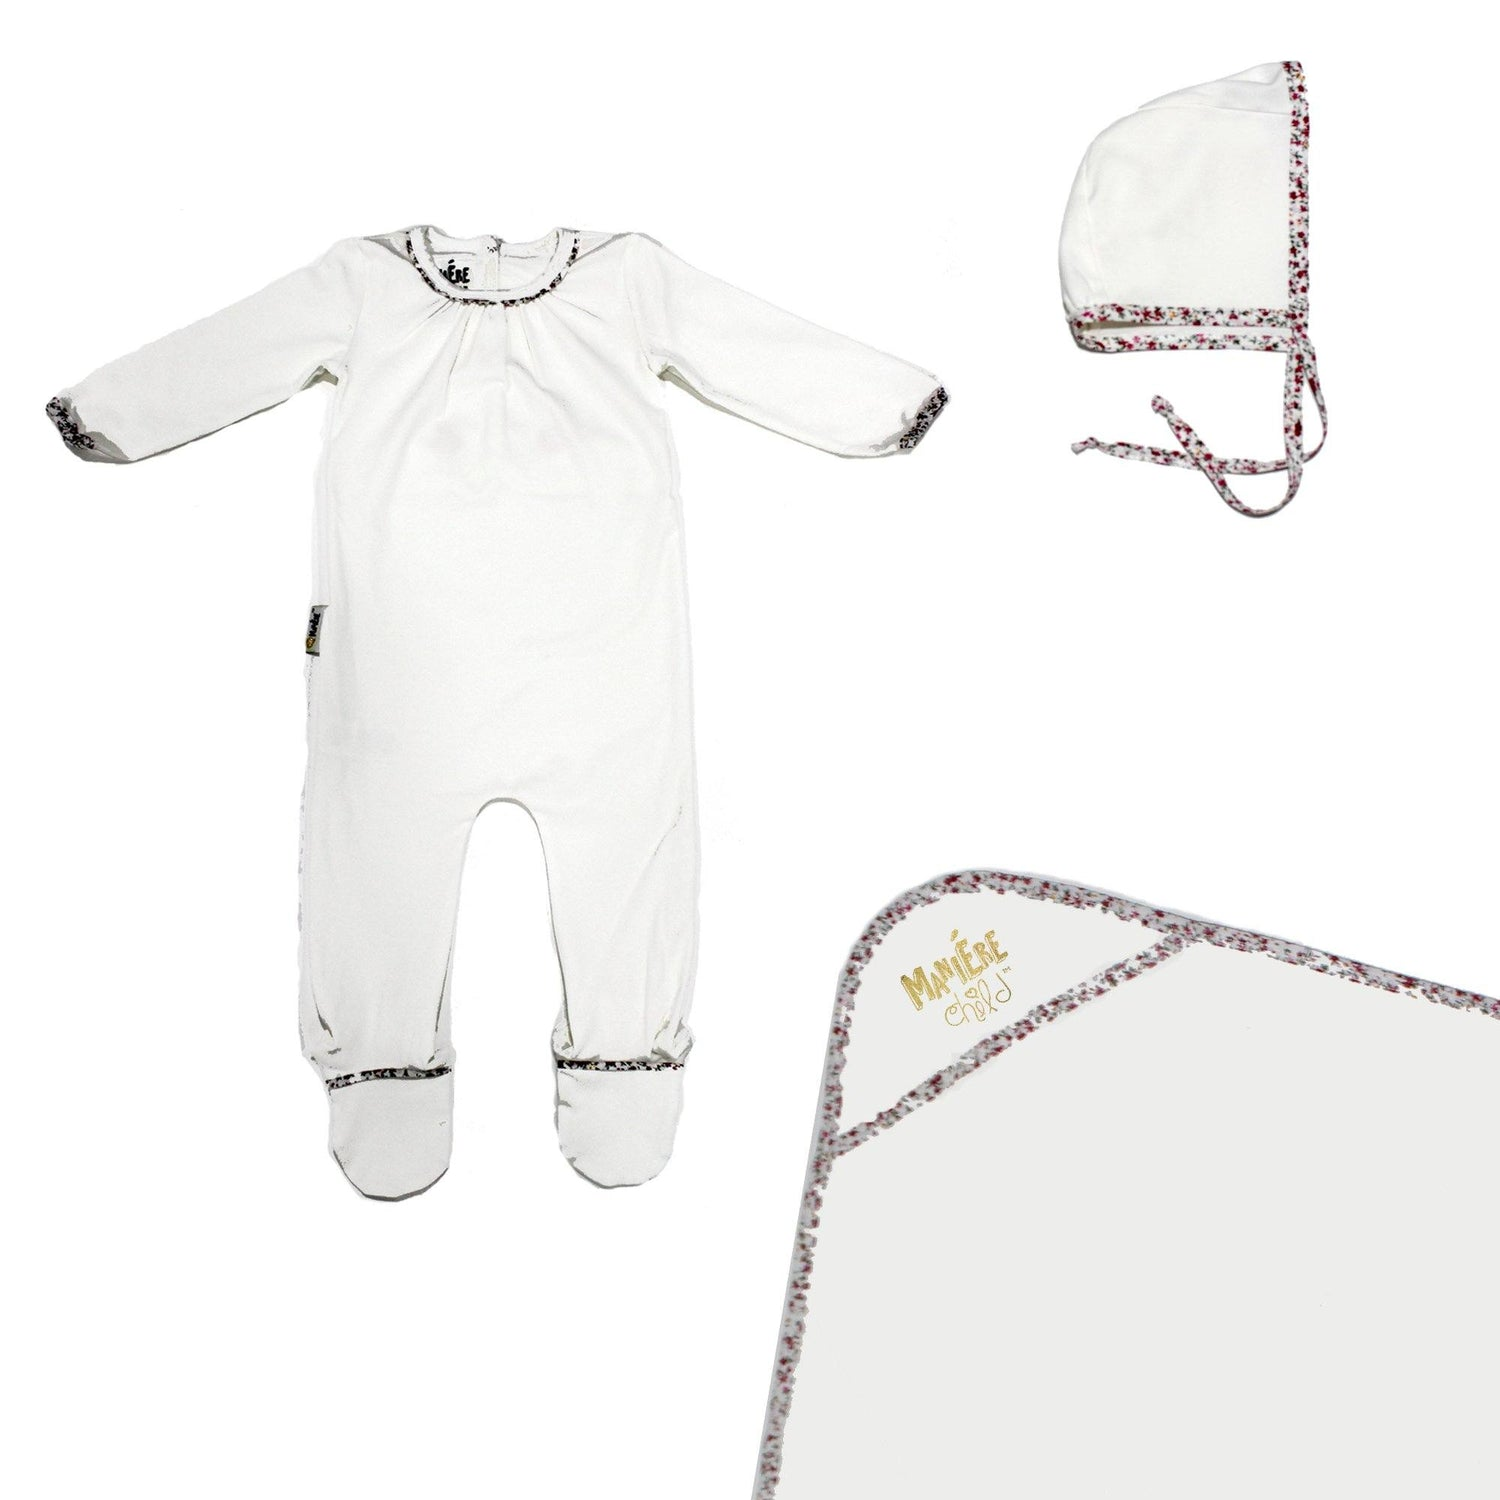 Floral Trim Footie Set Baby Sets Maniere Accessories White 3 Month